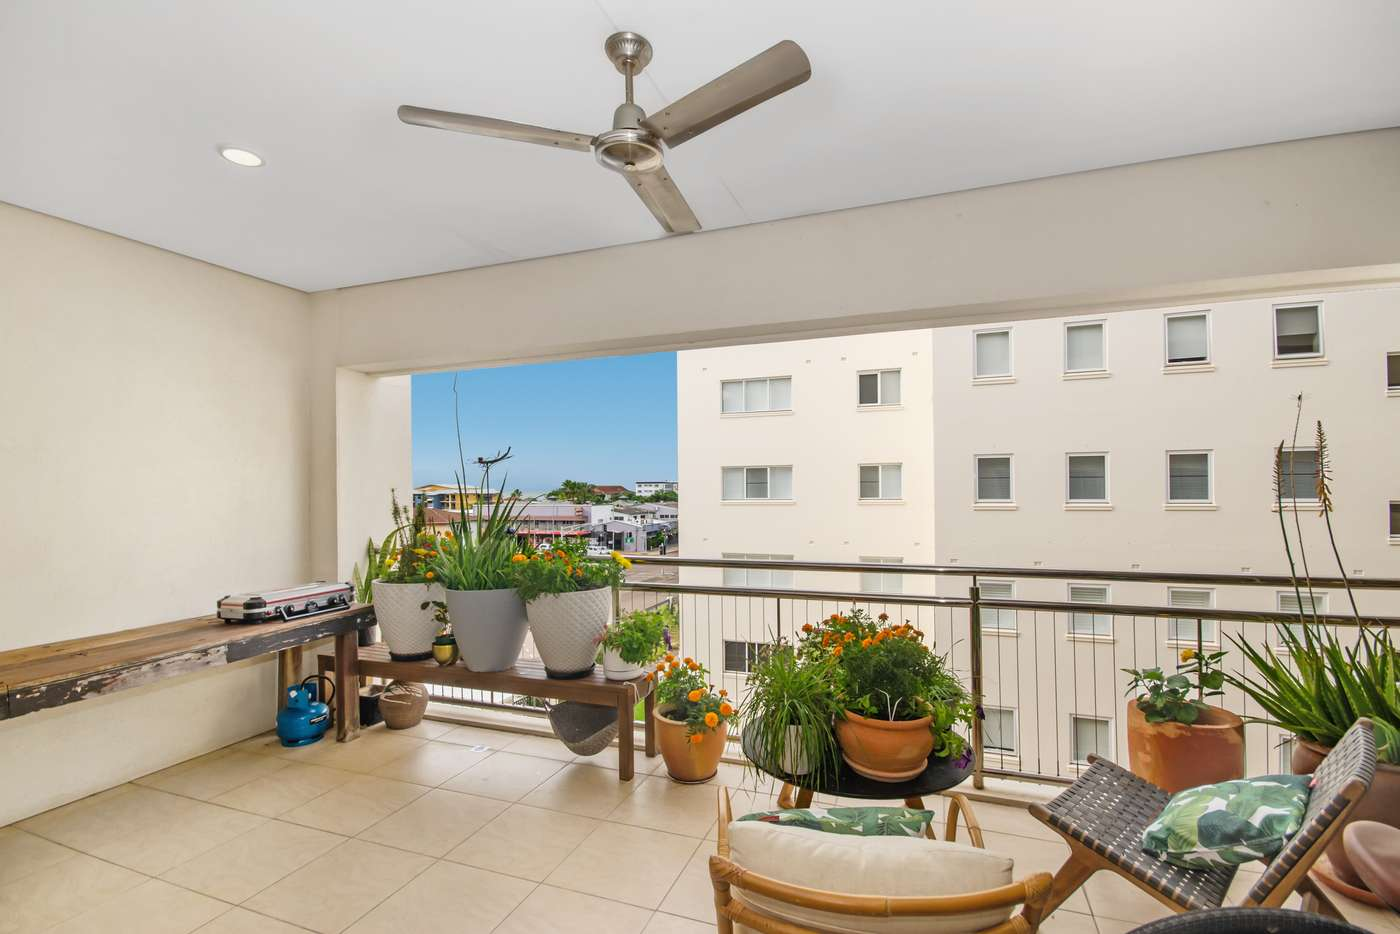 Fifth view of Homely apartment listing, 33/45 Gregory Street, North Ward QLD 4810